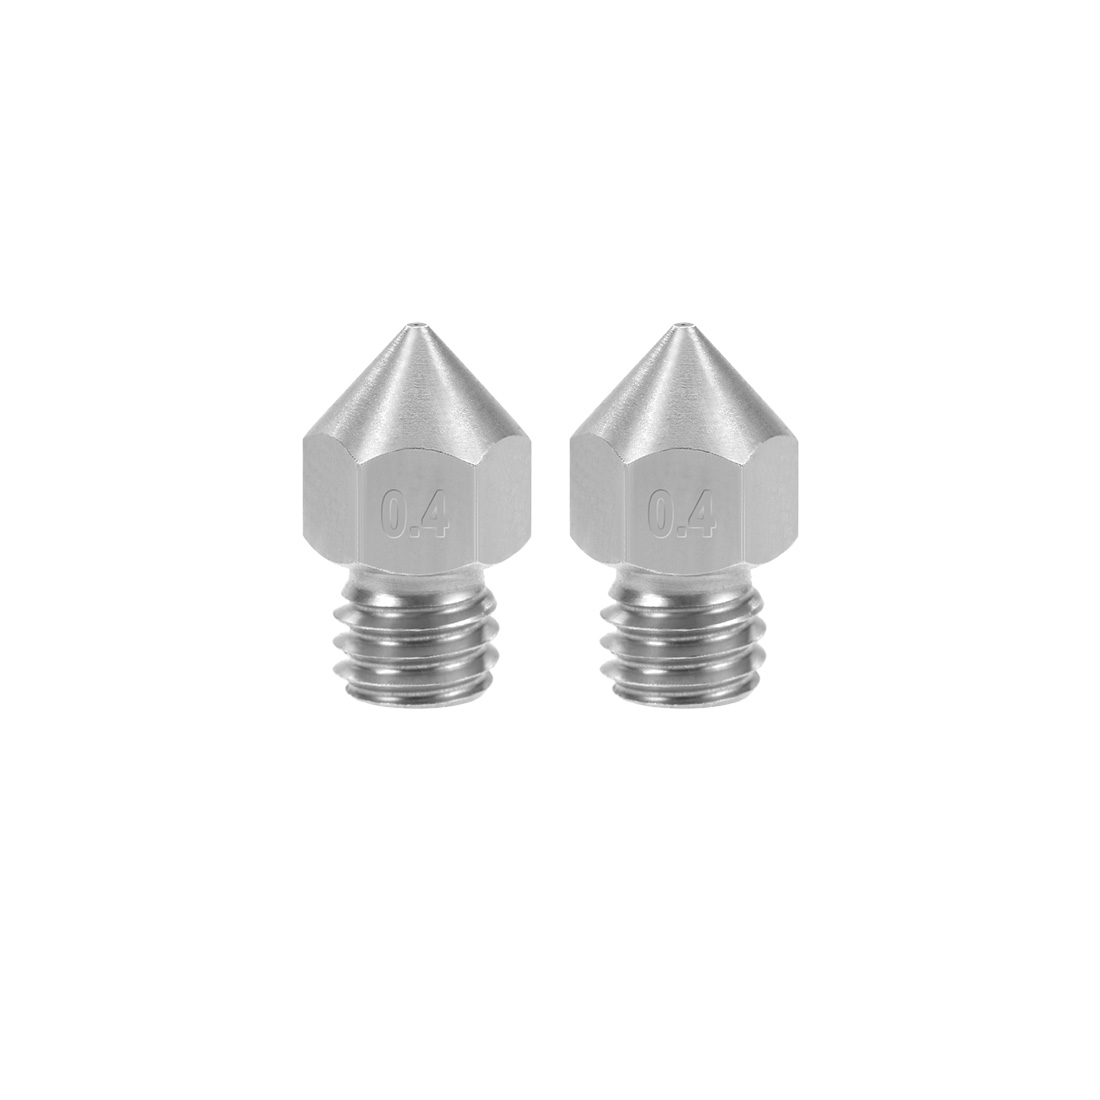 0.4mm 3D Printer Nozzle Head M6 Thread for MK8 1.75mm Extruder Print 2pcs